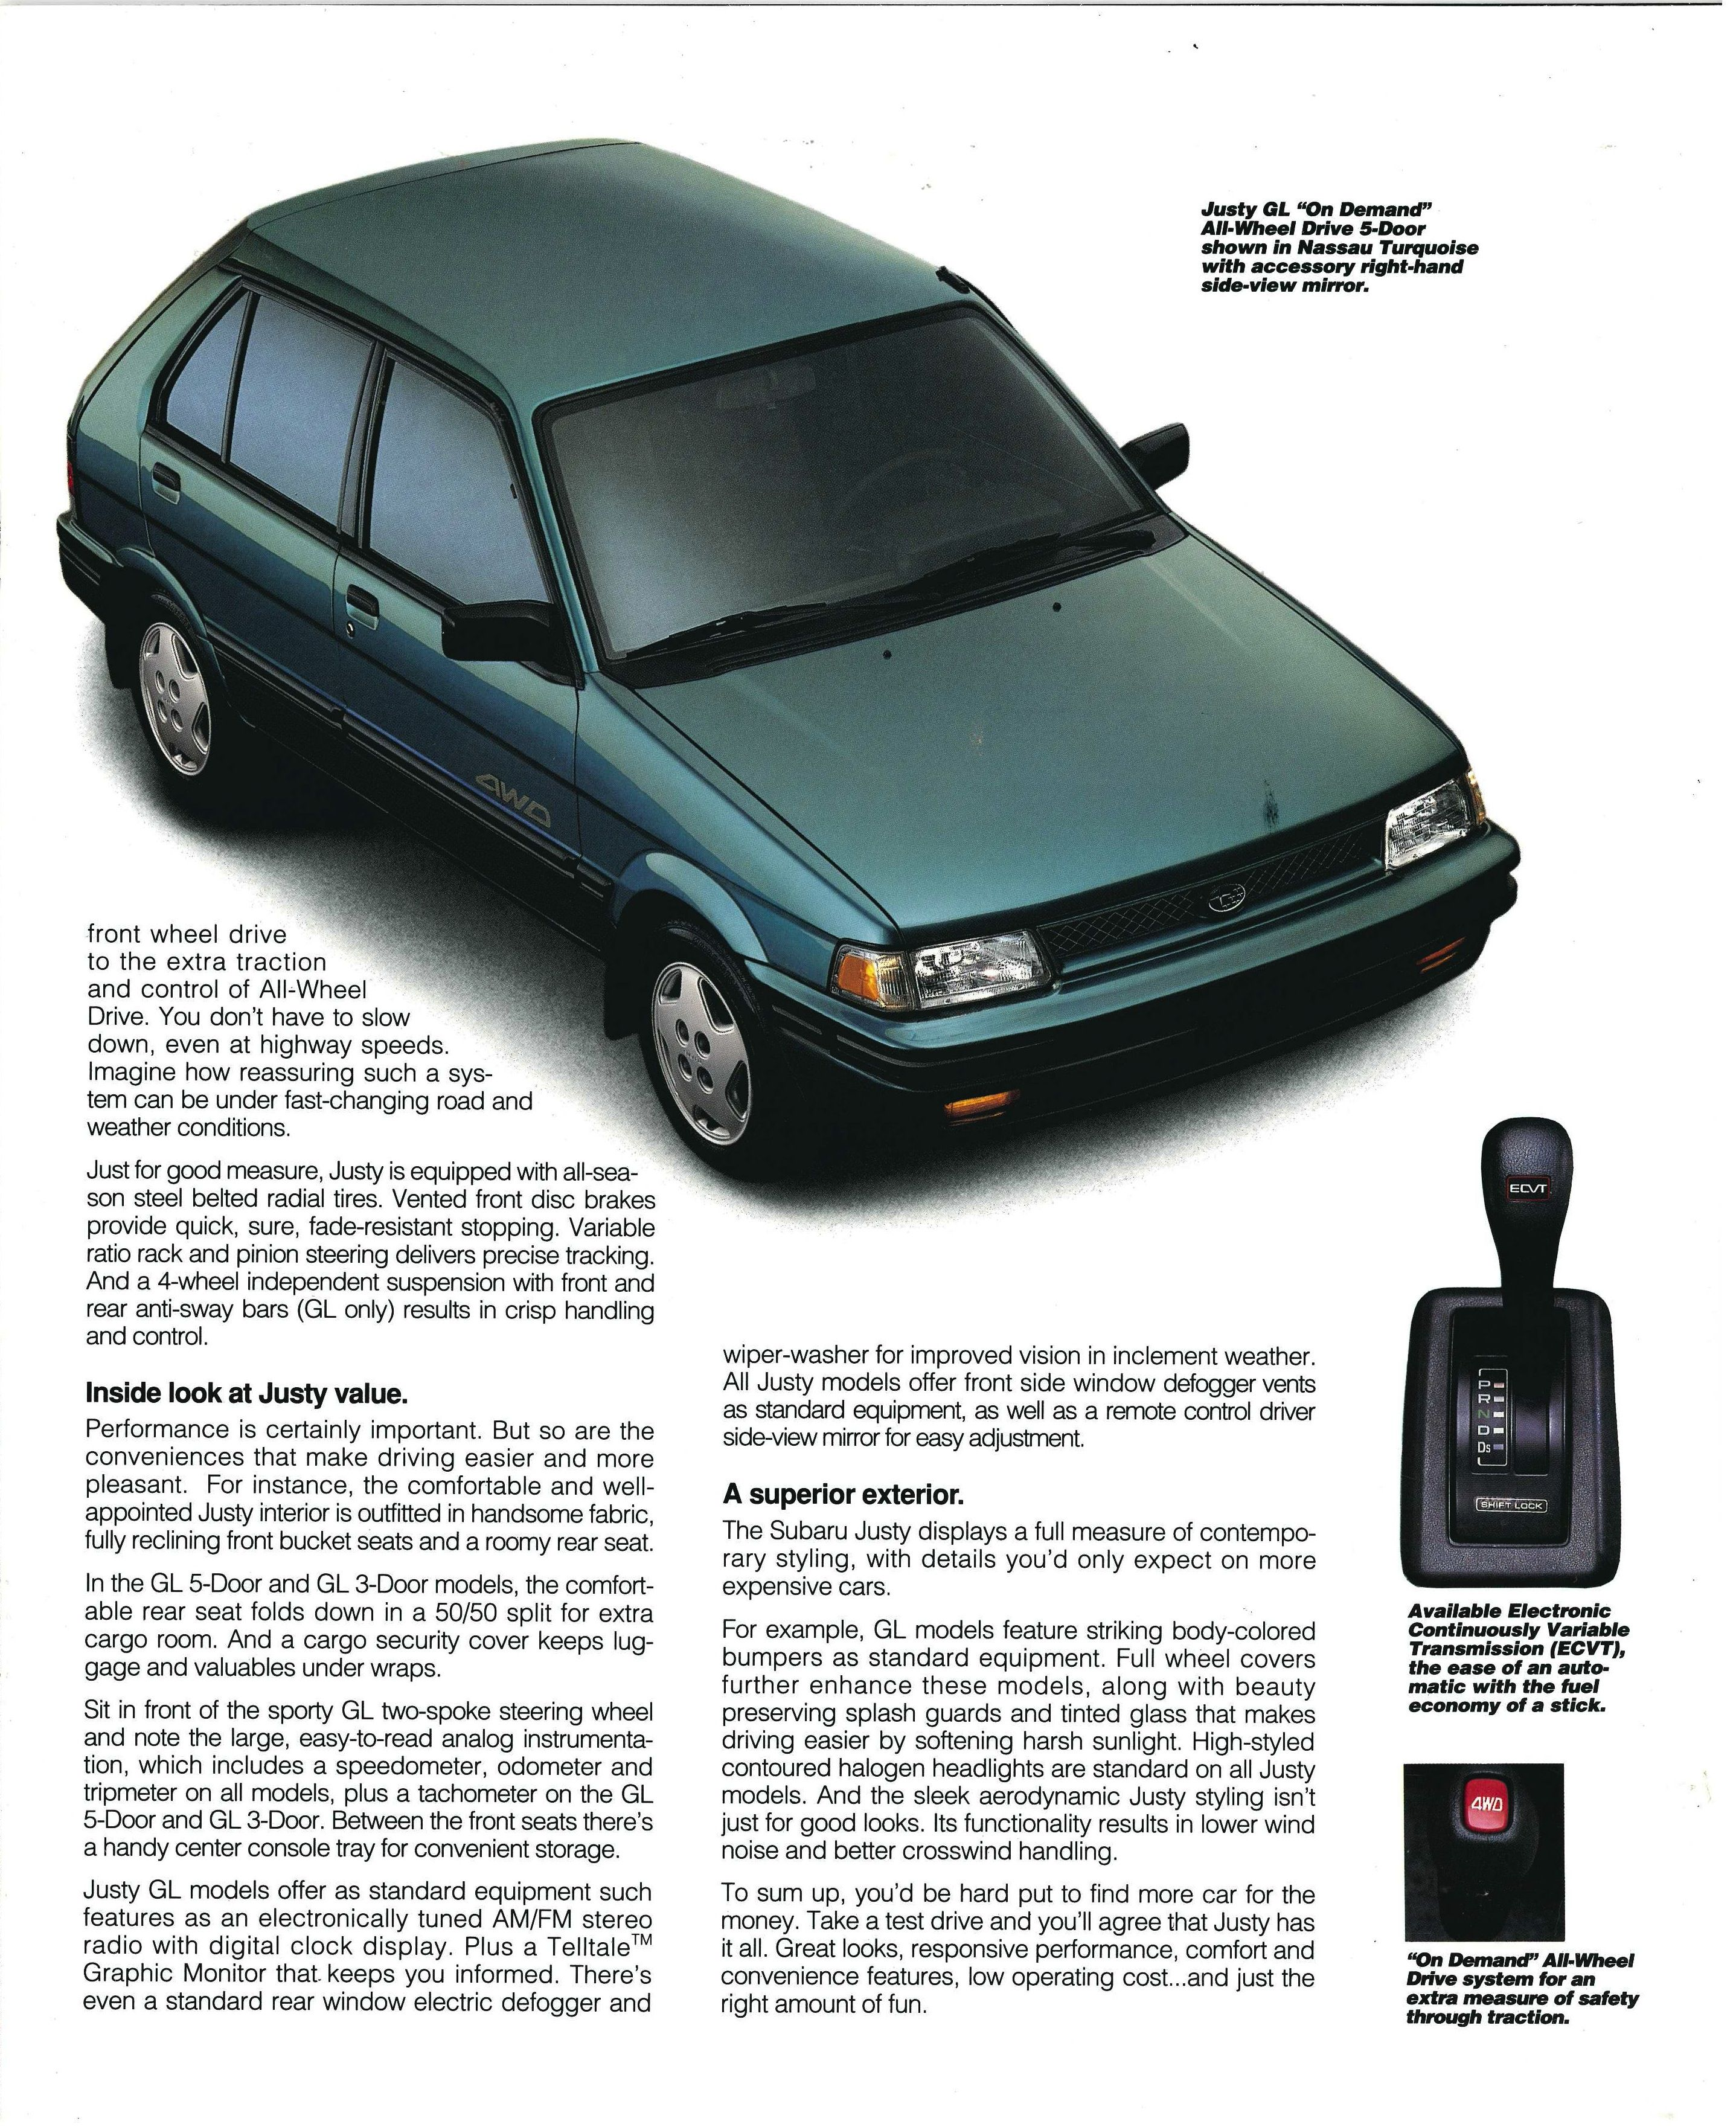 1000 Ideas About Subaru Justy On Pinterest: 1993 #Subaru #Justy #Brochure With On Demand All Wheel